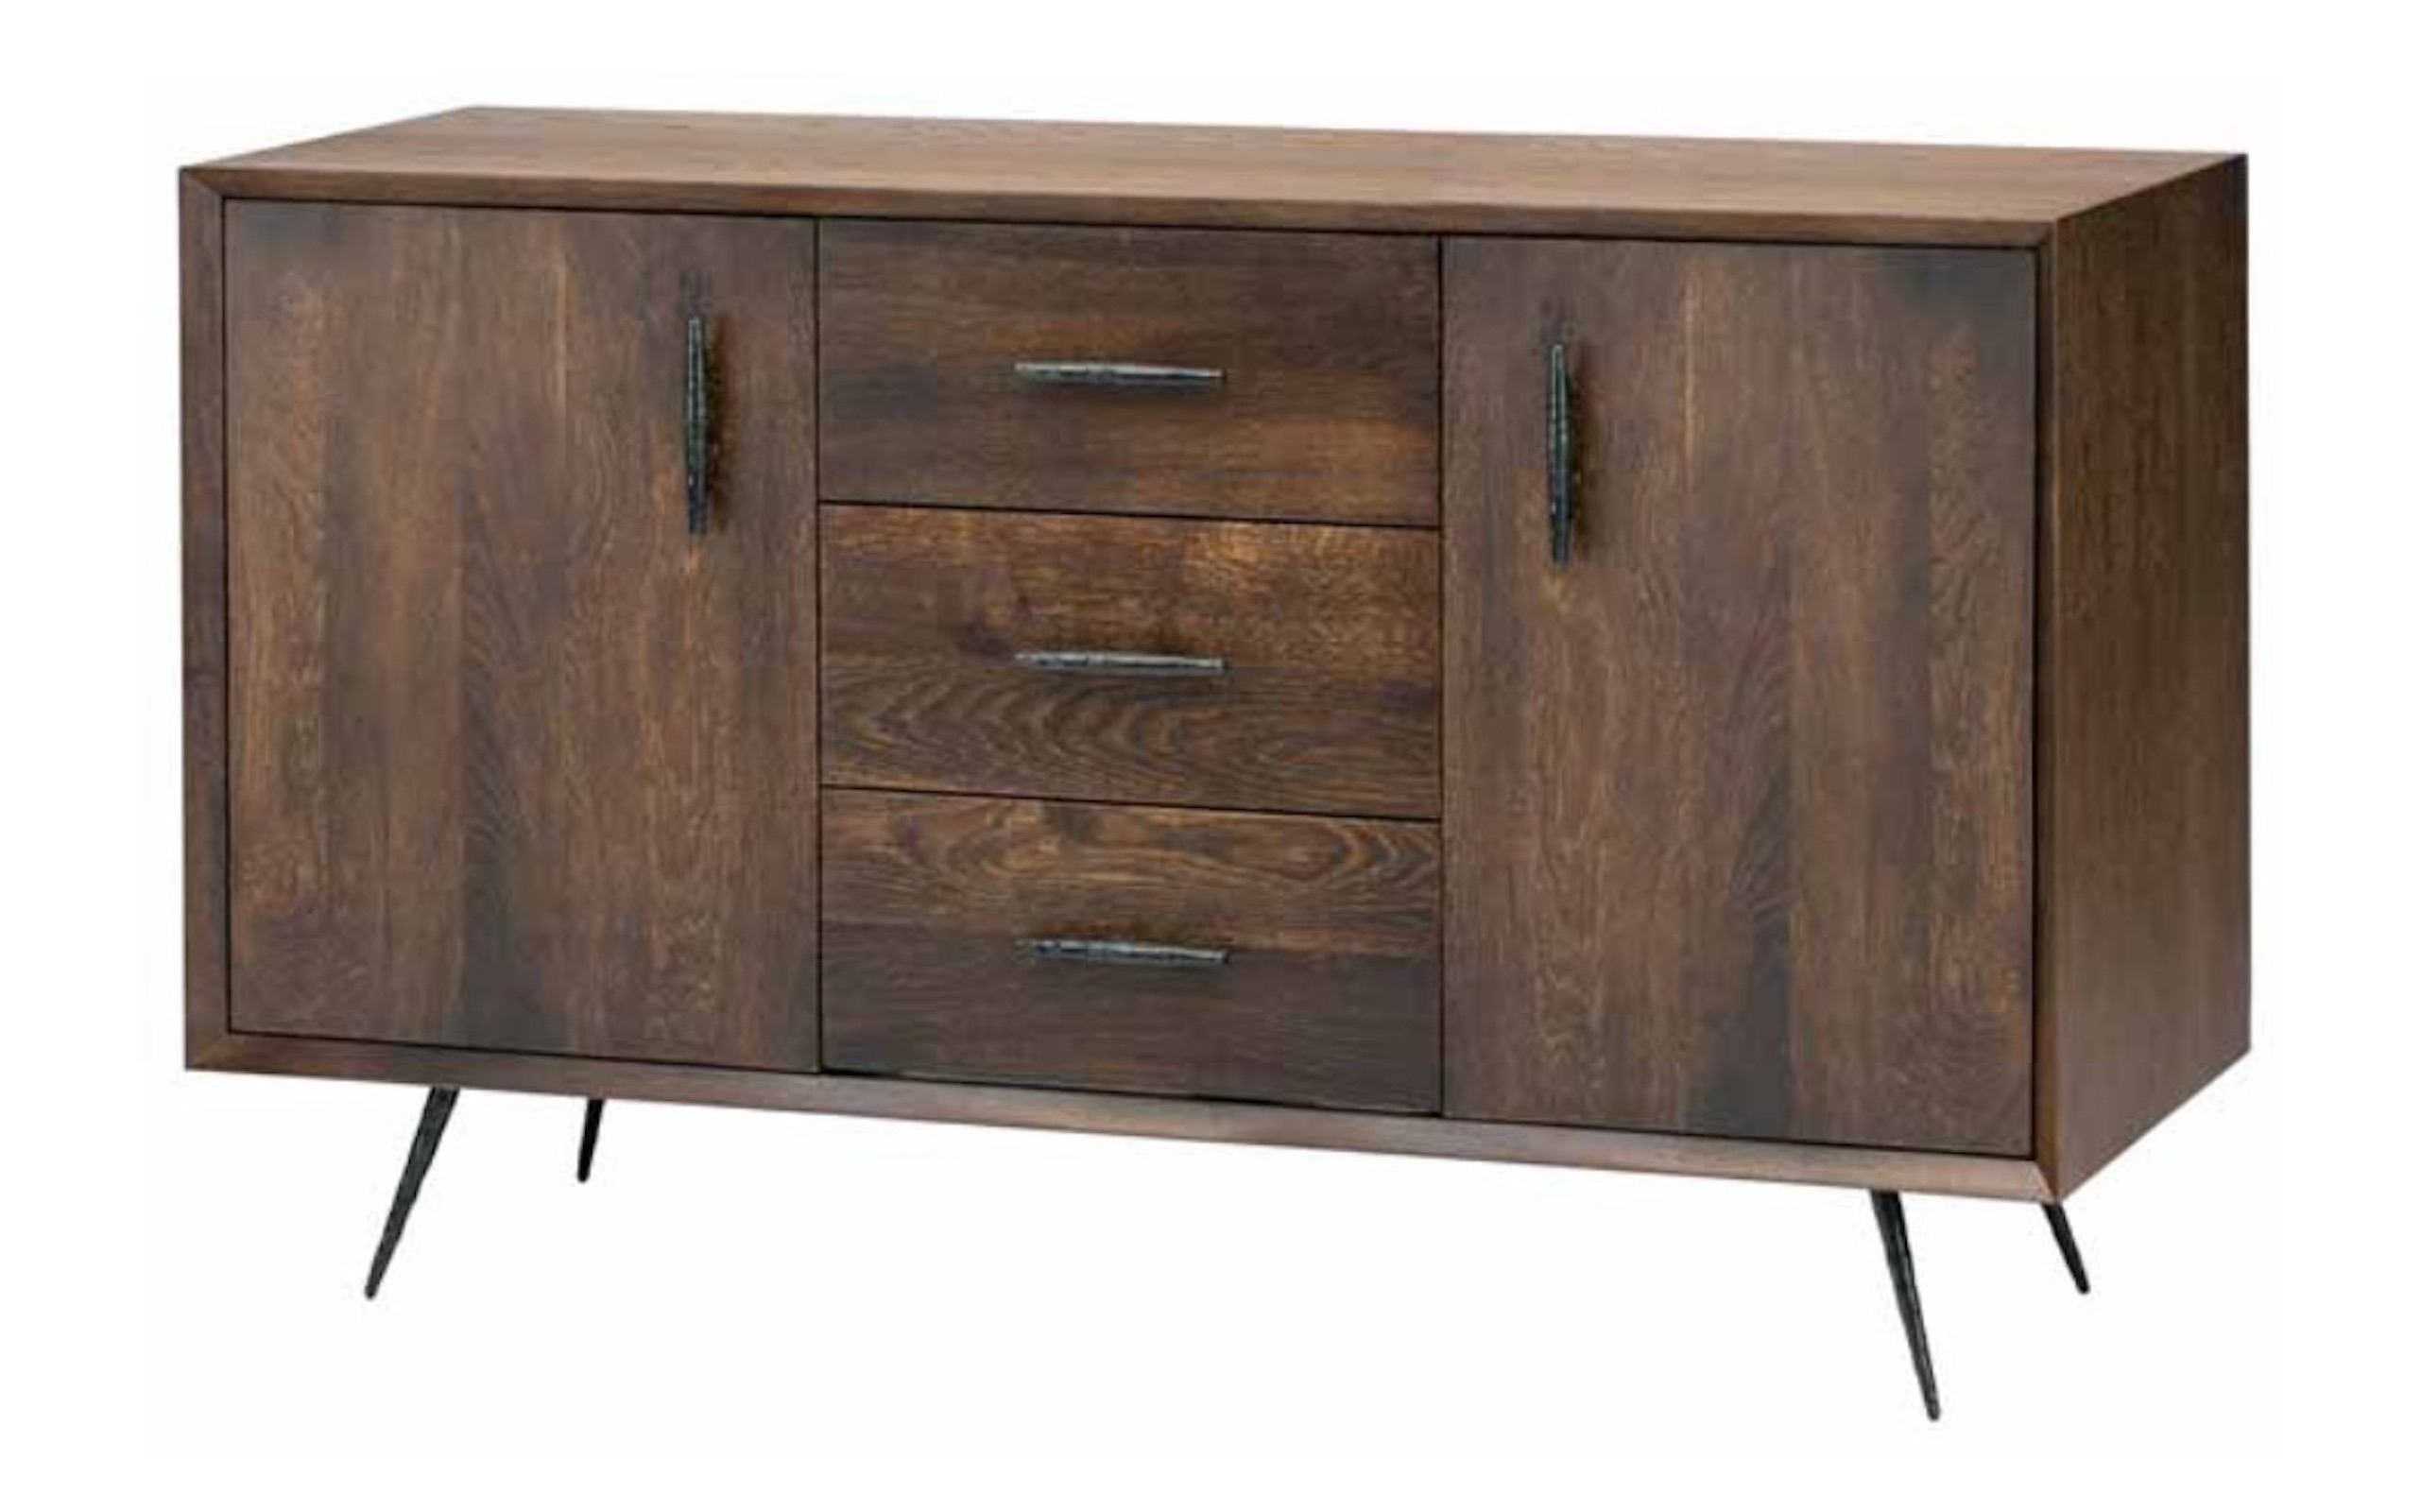 Nexa Sideboard Cabinet In Seared Oak And Black Cast Iron Legs Regarding Best And Newest Black Oak Wood And Wrought Iron Sideboards (#14 of 20)